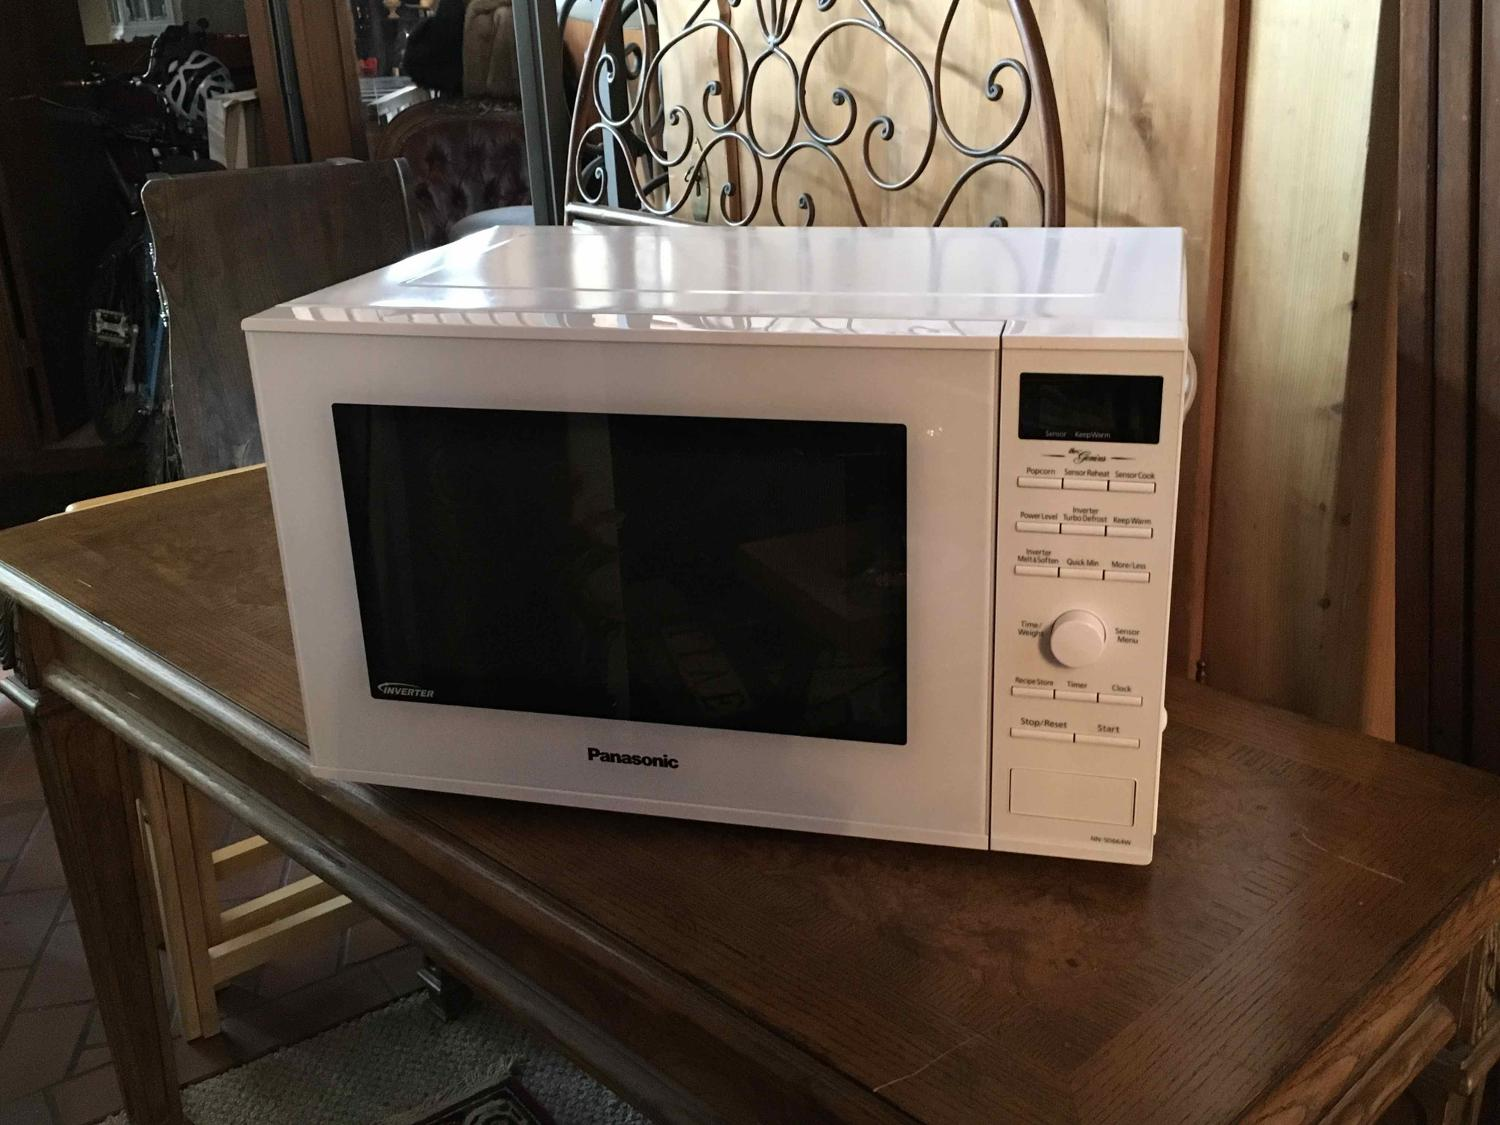 Panasonic Microwave with Inverter technology - like new